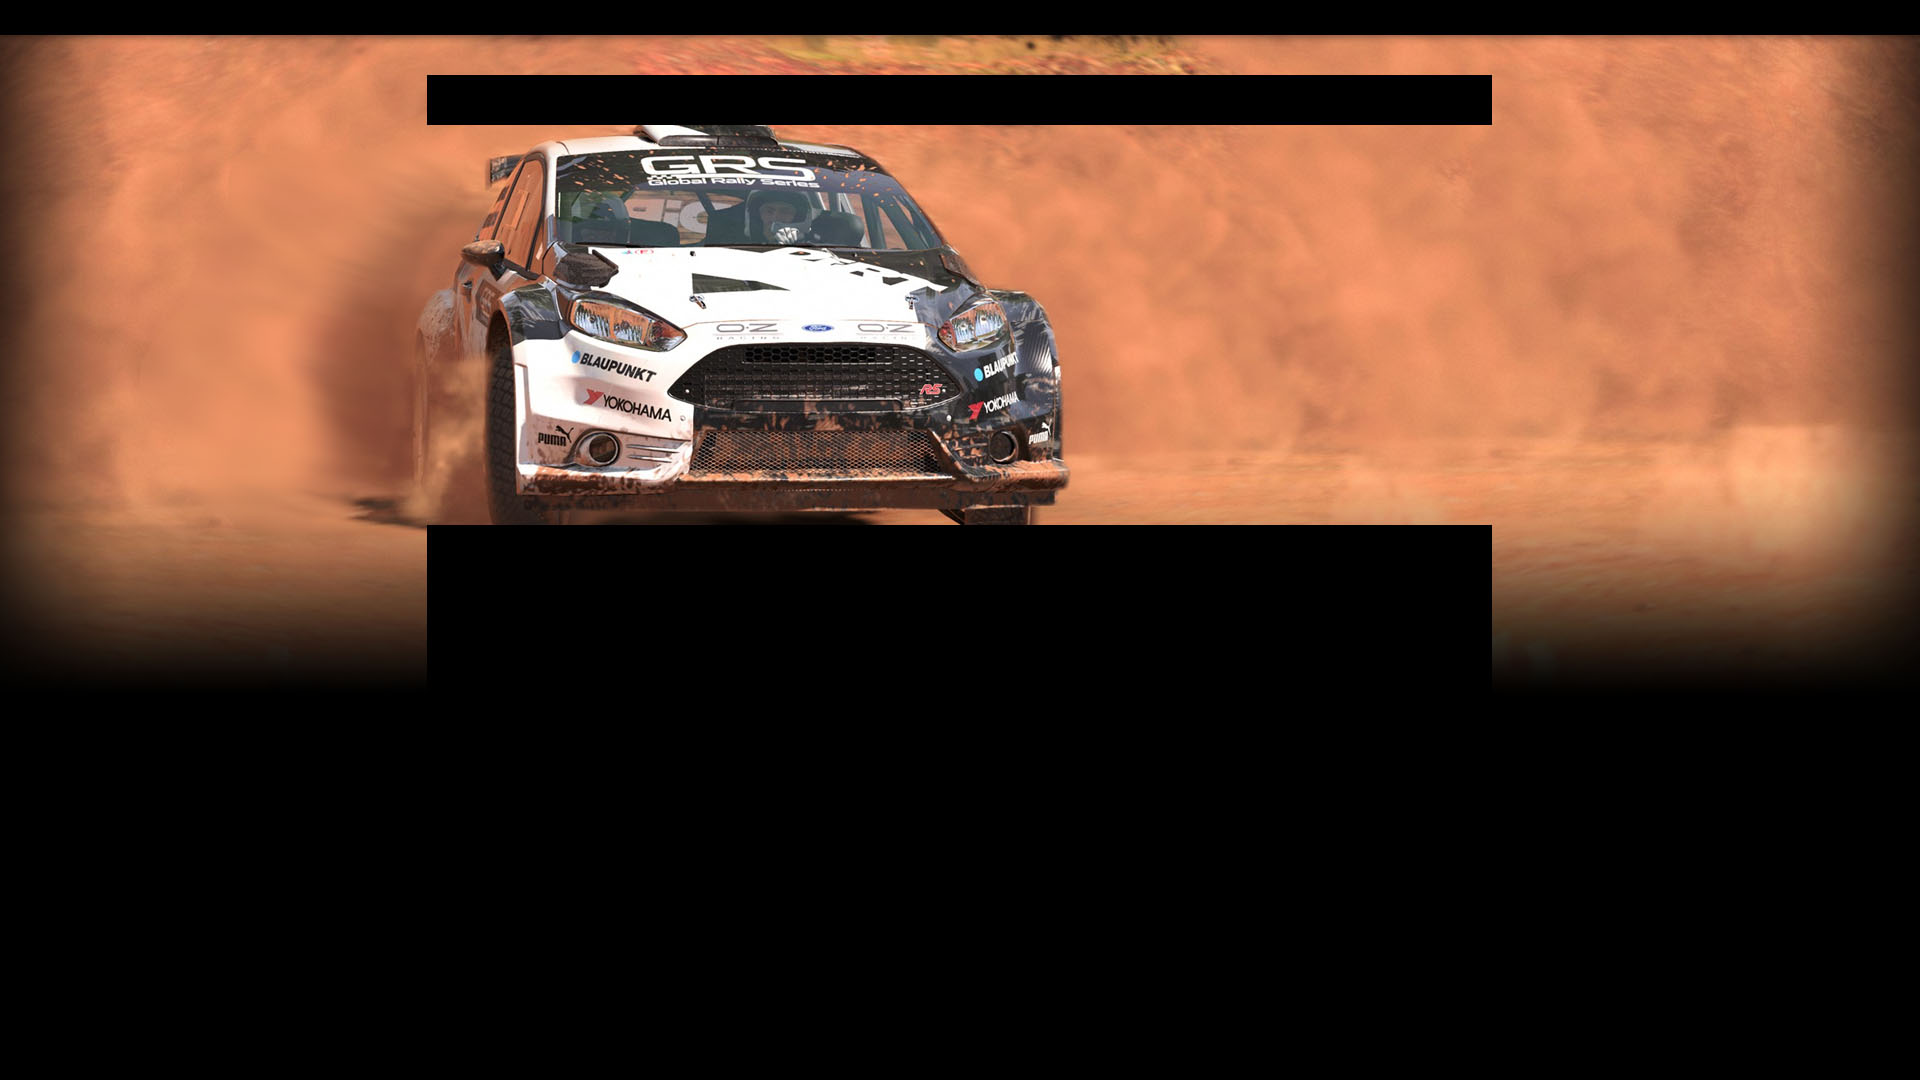 DiRT 4 [PC/Xbox One] video game